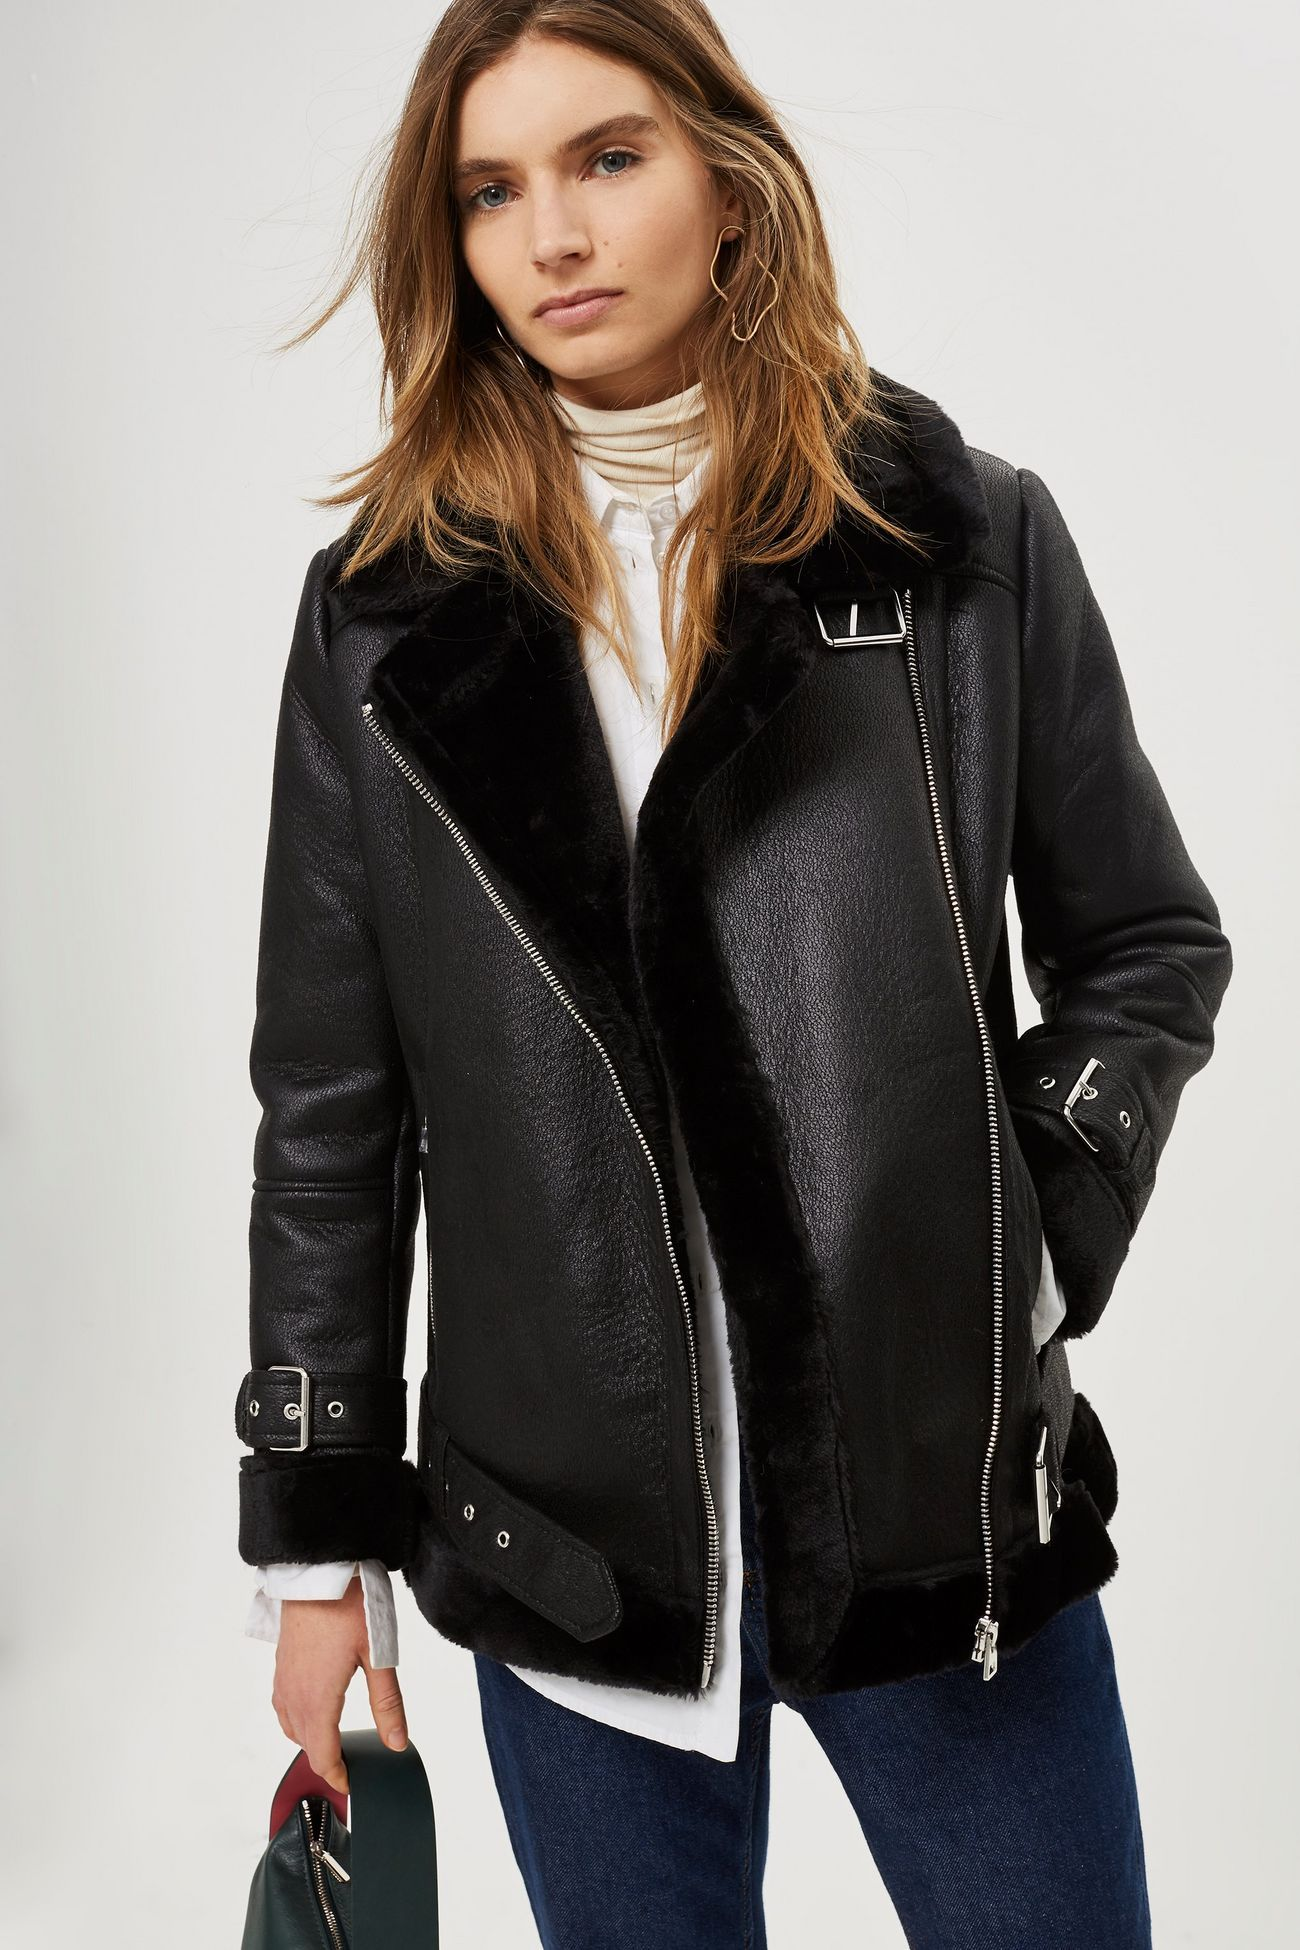 Faux Shearling Biker Jacket Biker jacket, Jackets, Clothes